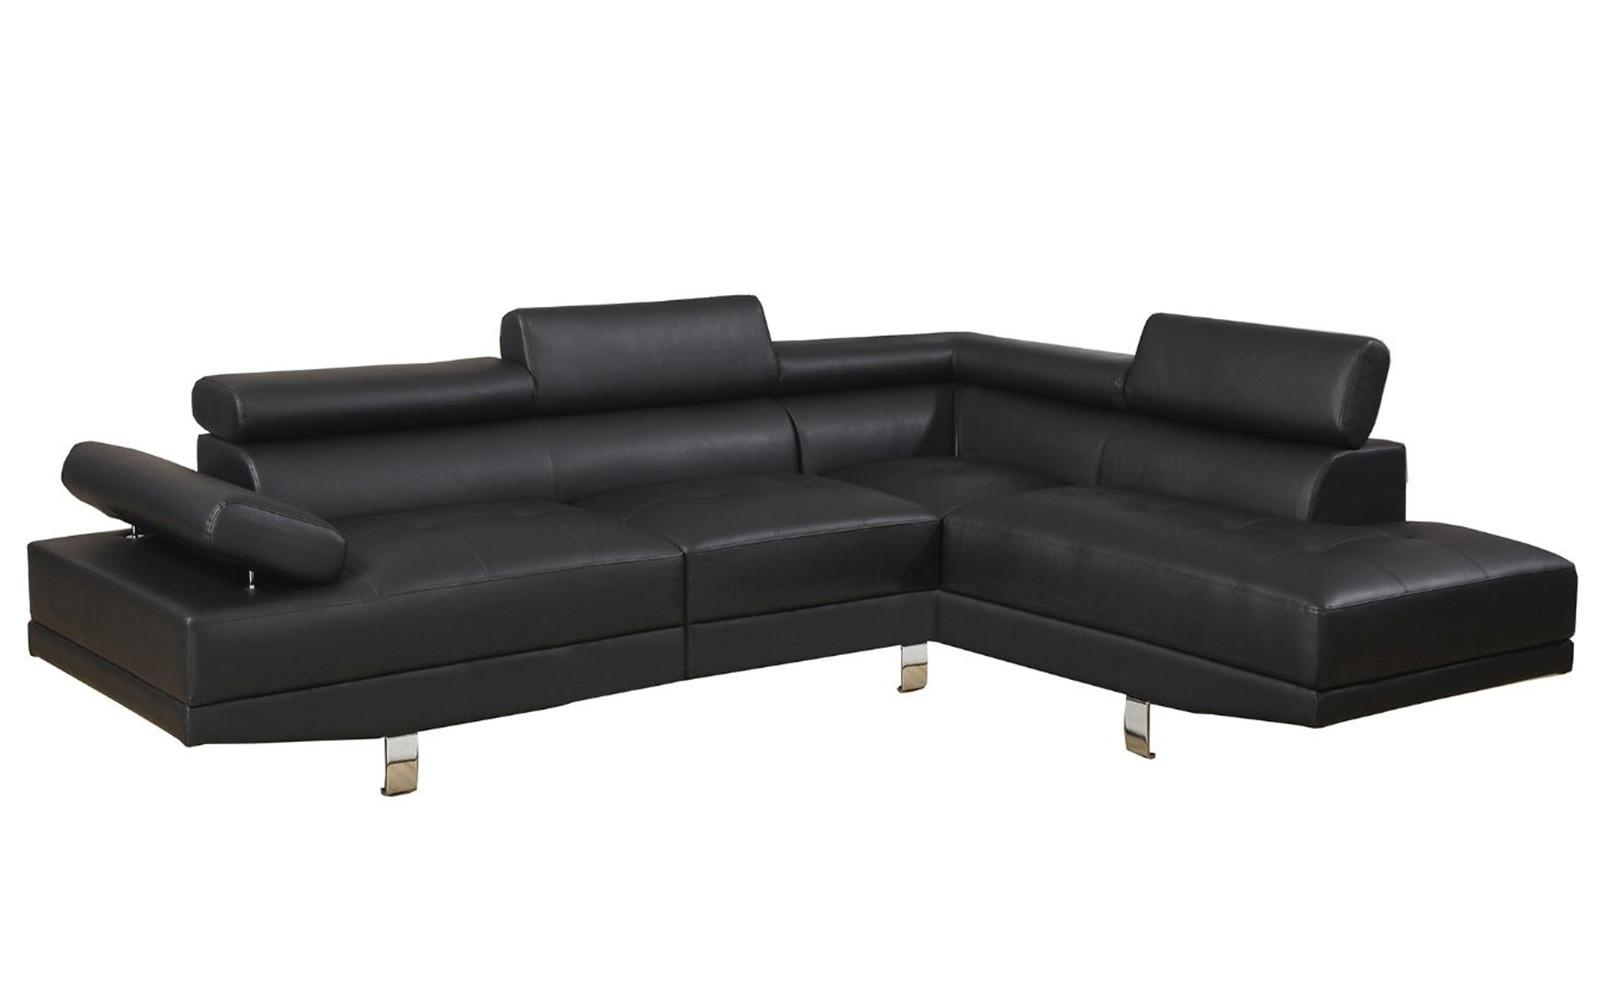 2 Piece Modern Bonded Leather Right Facing Chaise Sectional Sofa Within Sectional Sofa With 2 Chaises (View 7 of 20)